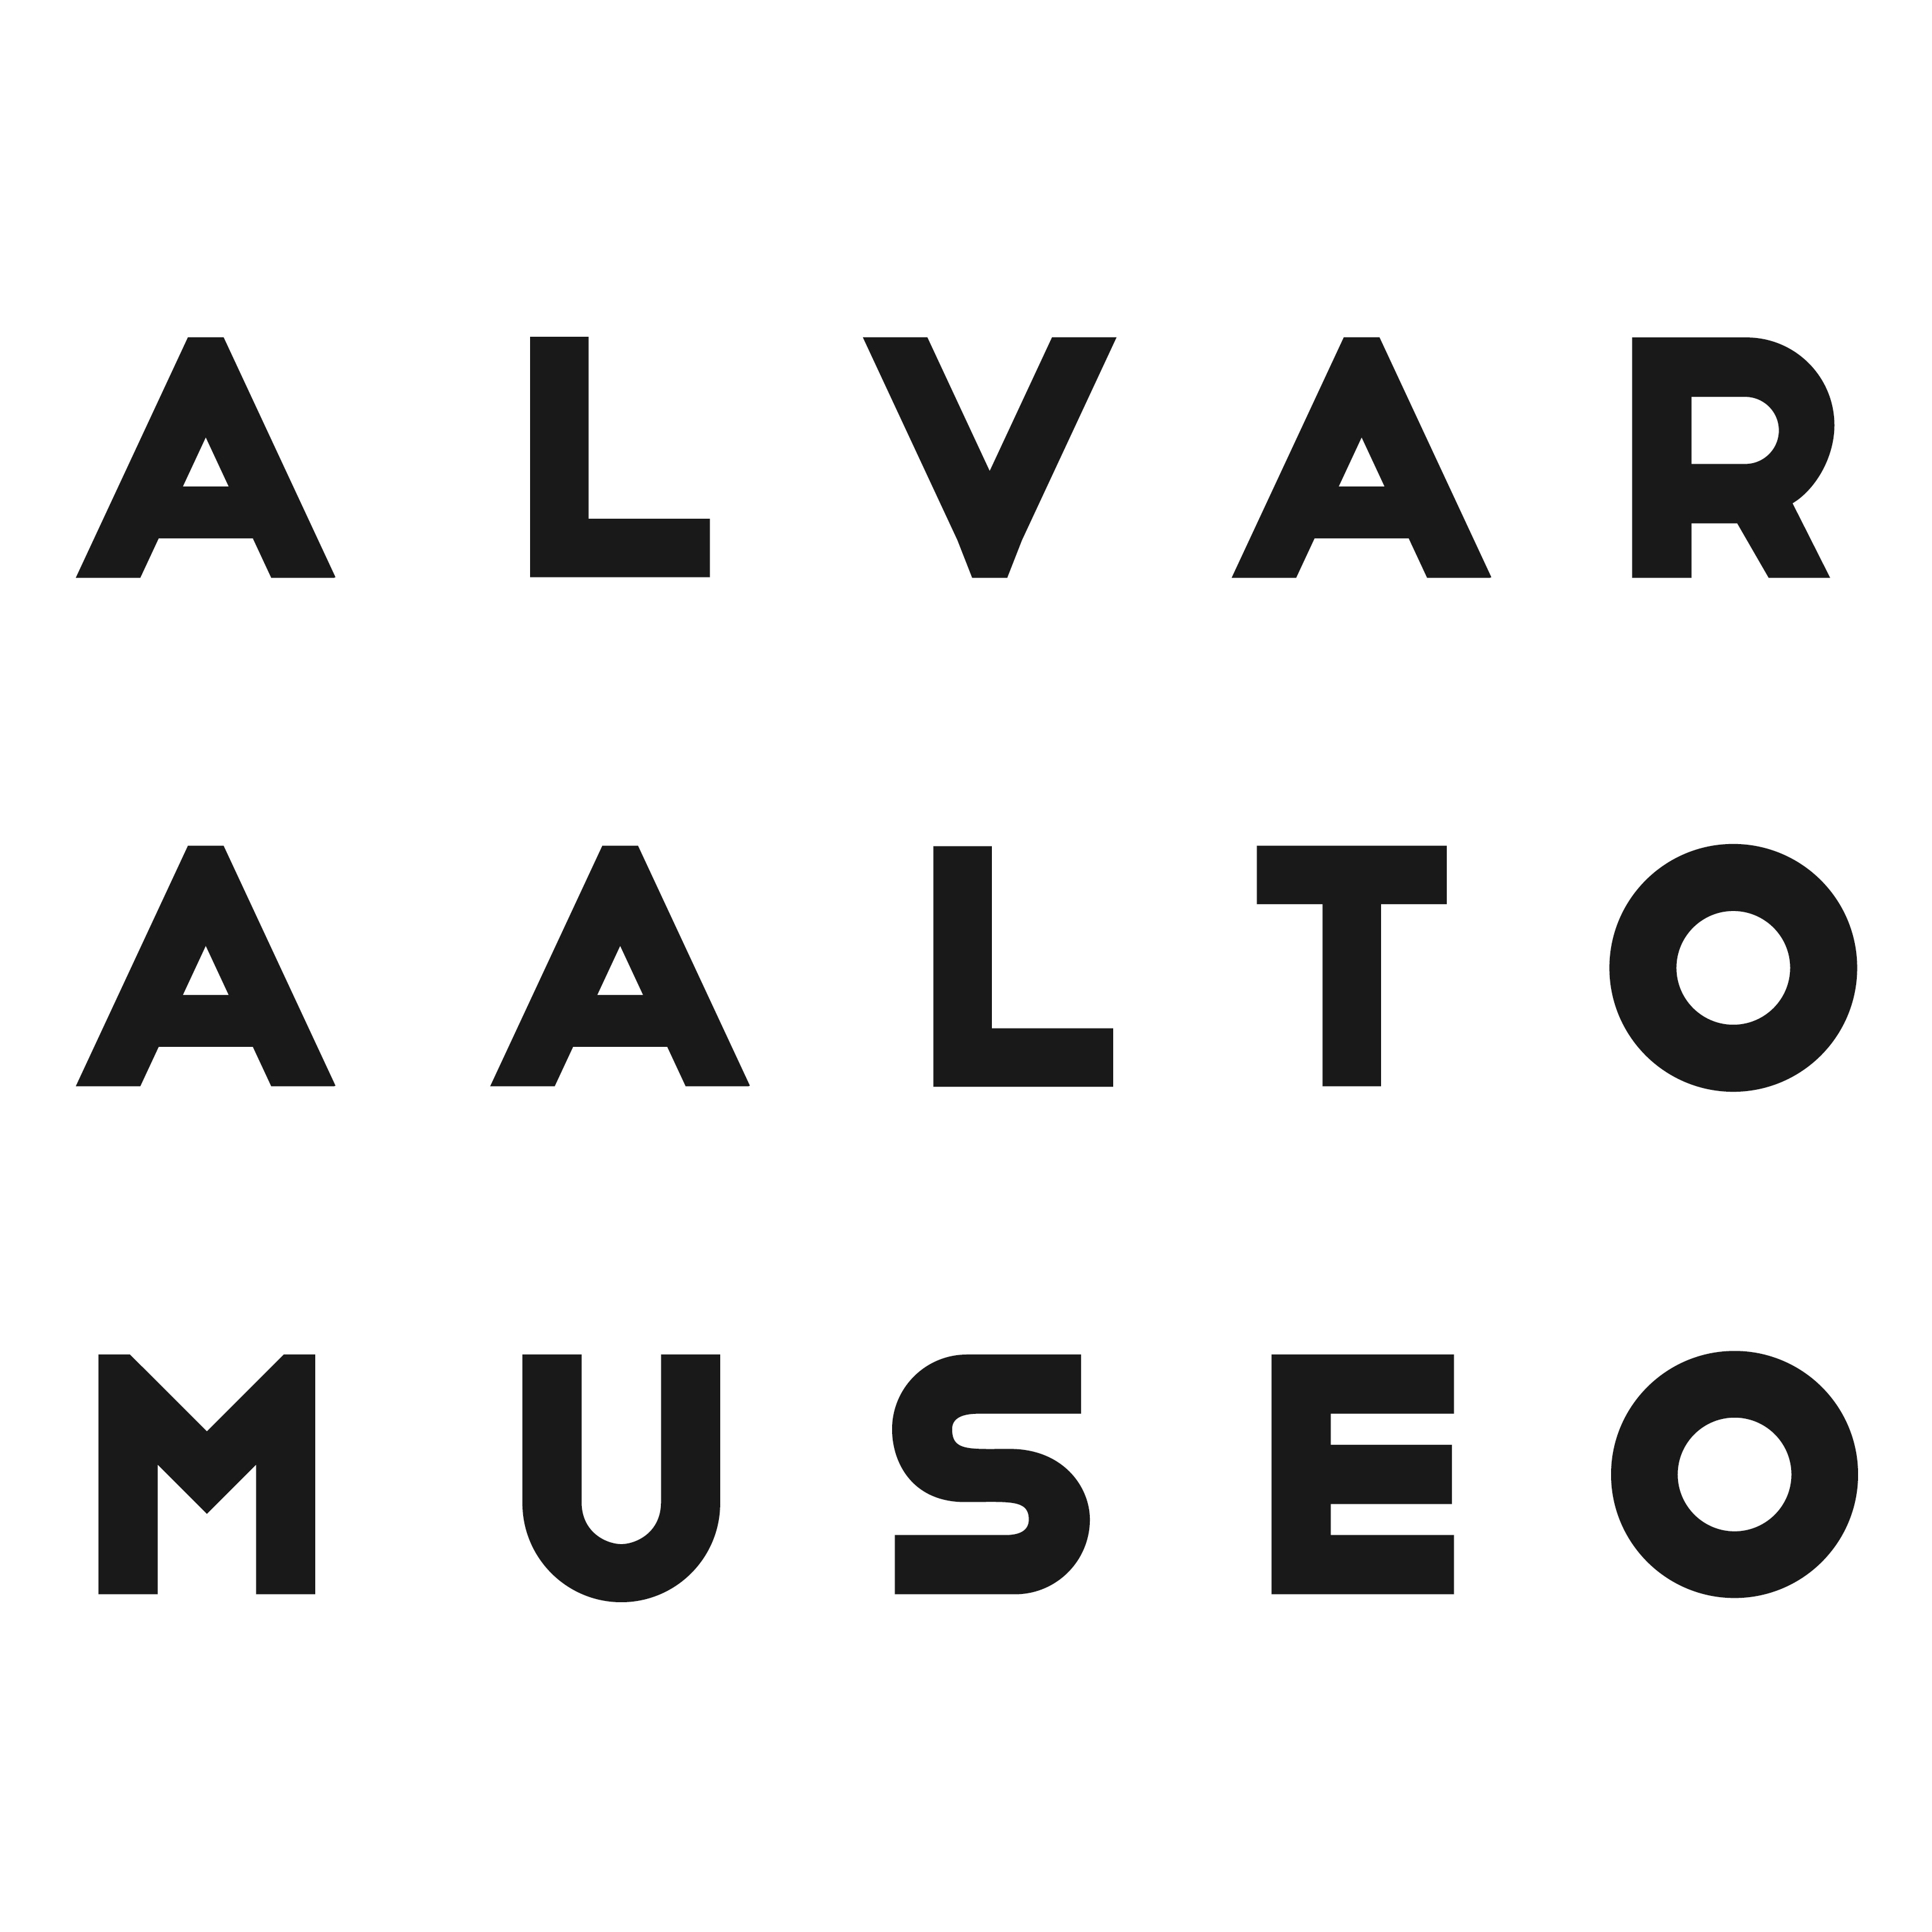 alvar aalto Alvar aalto: worldwide auctions of art categories: painting, print-multiple,  the  artist's market, biography, price levels and indices of his/her artworks.